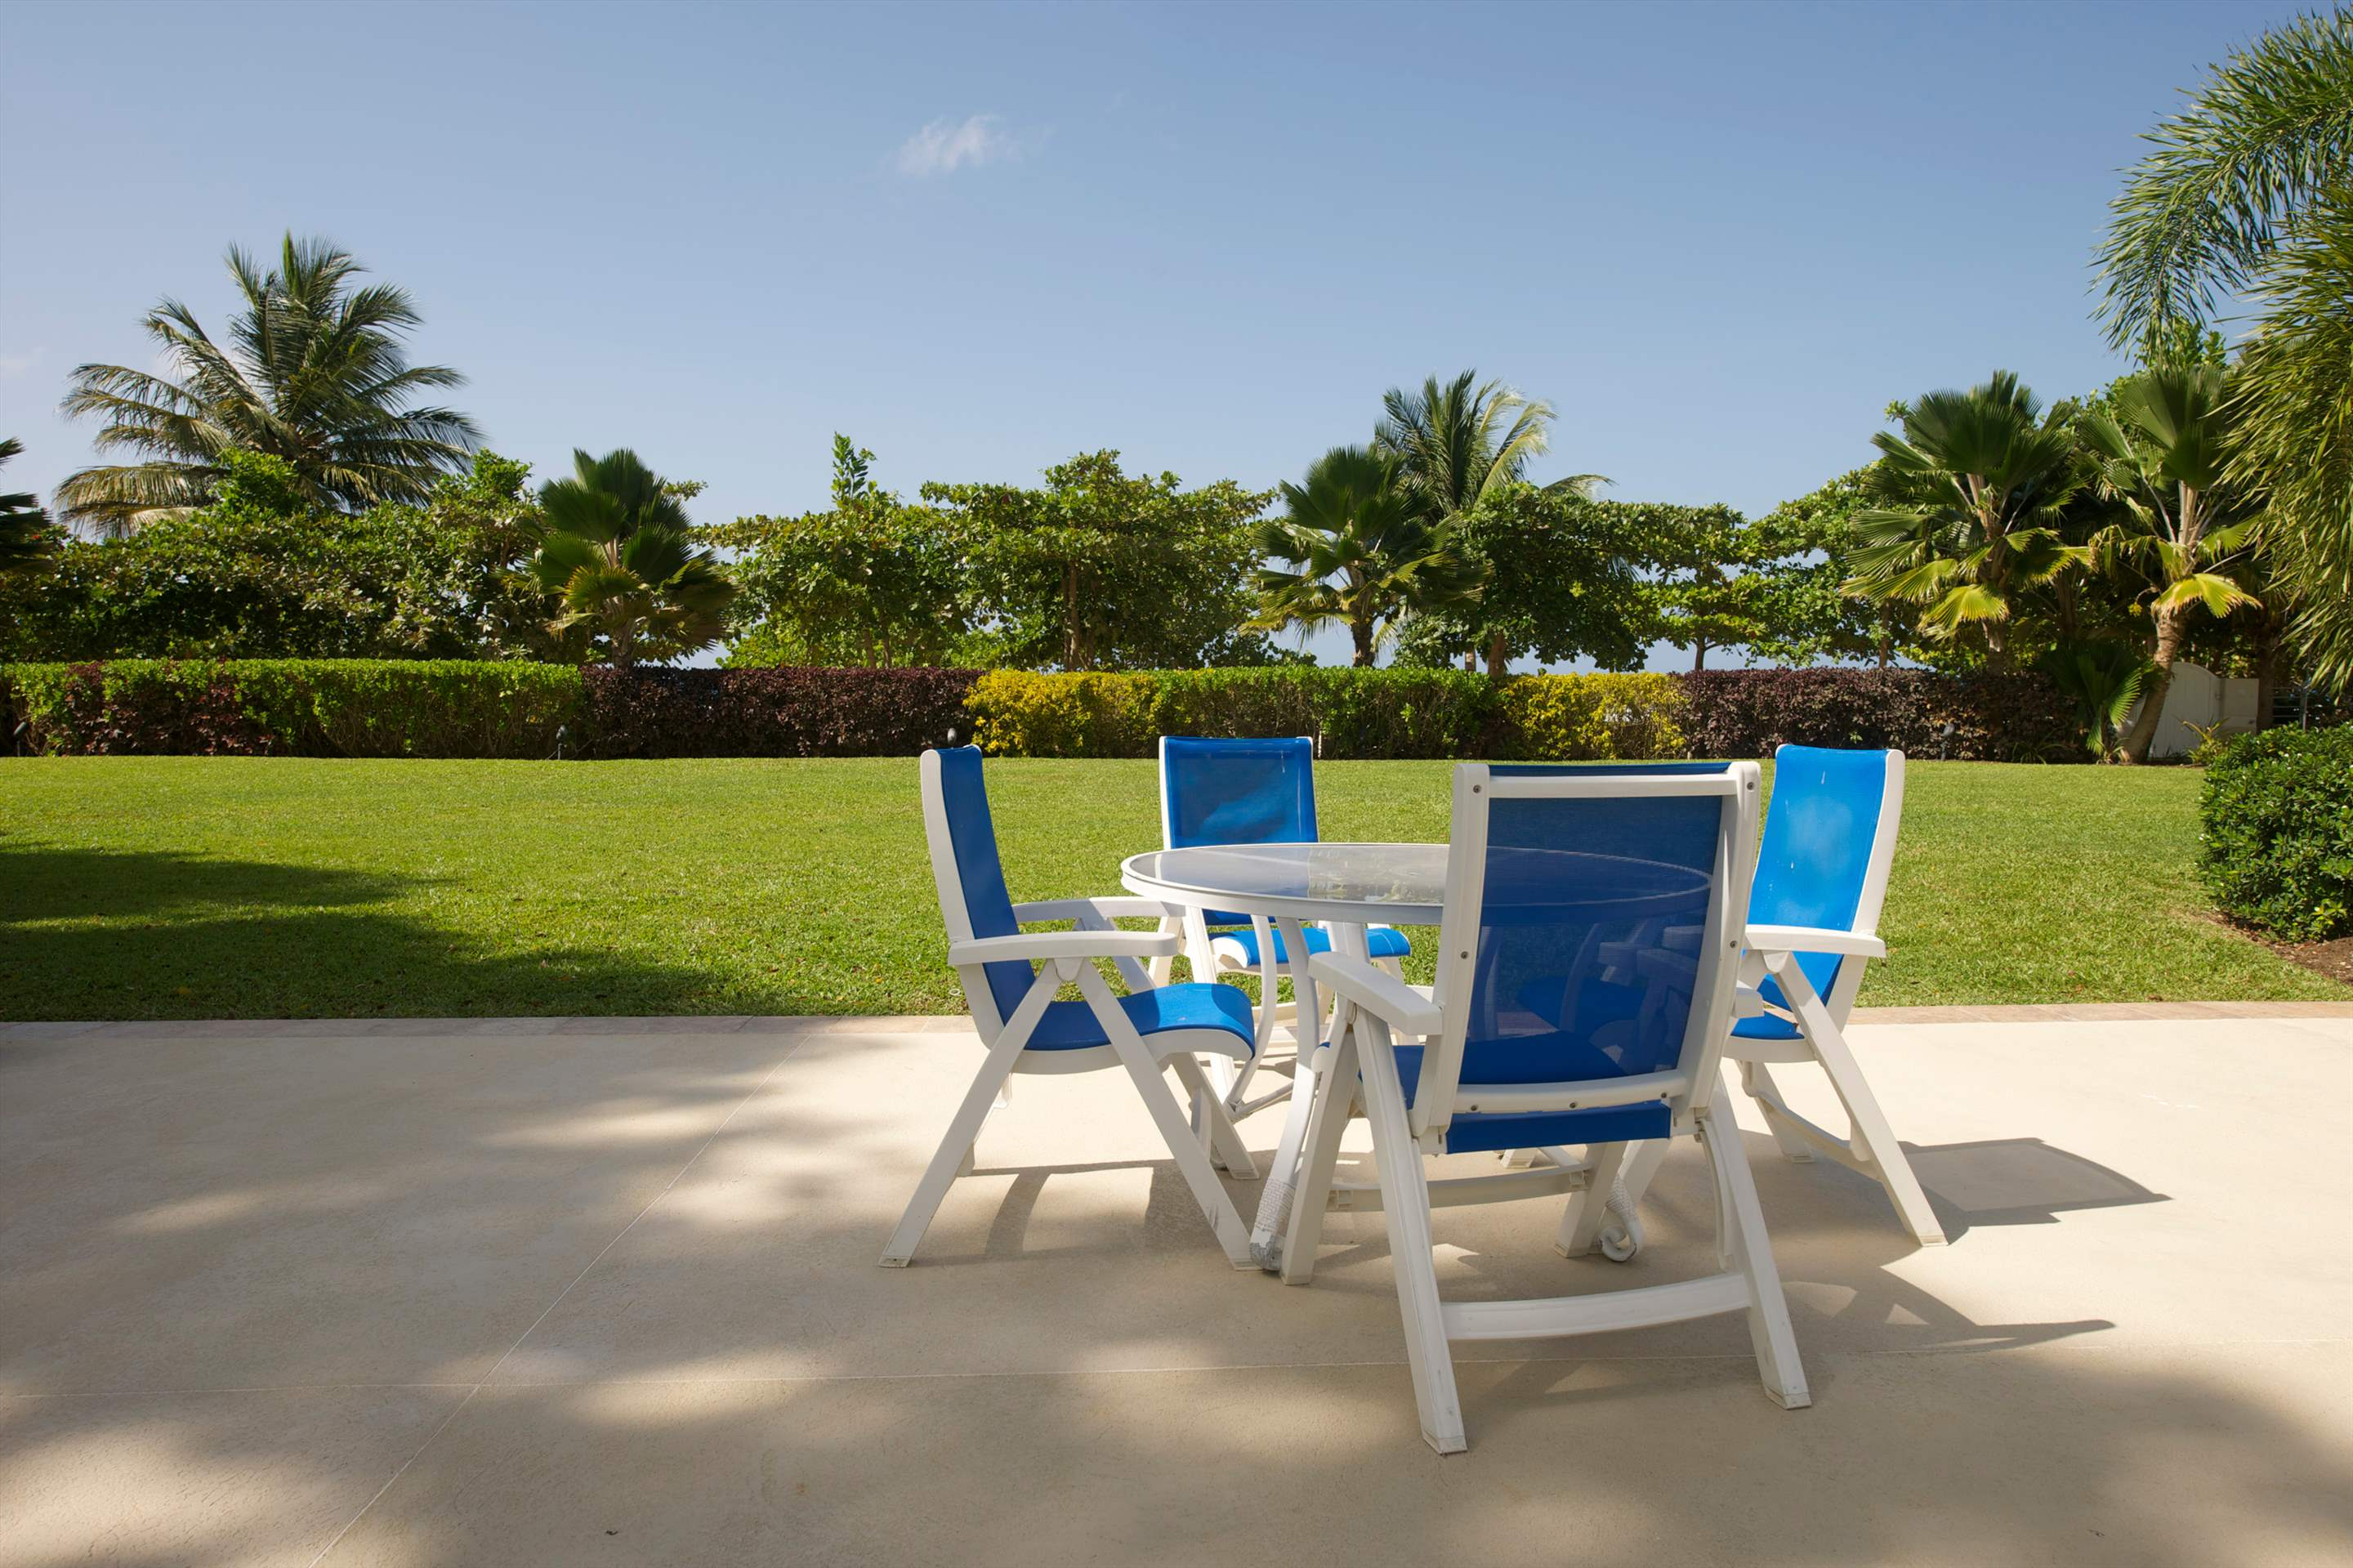 Palm Beach 110, 3 bedroom apartment in St. Lawrence Gap & South Coast, Barbados Photo #4